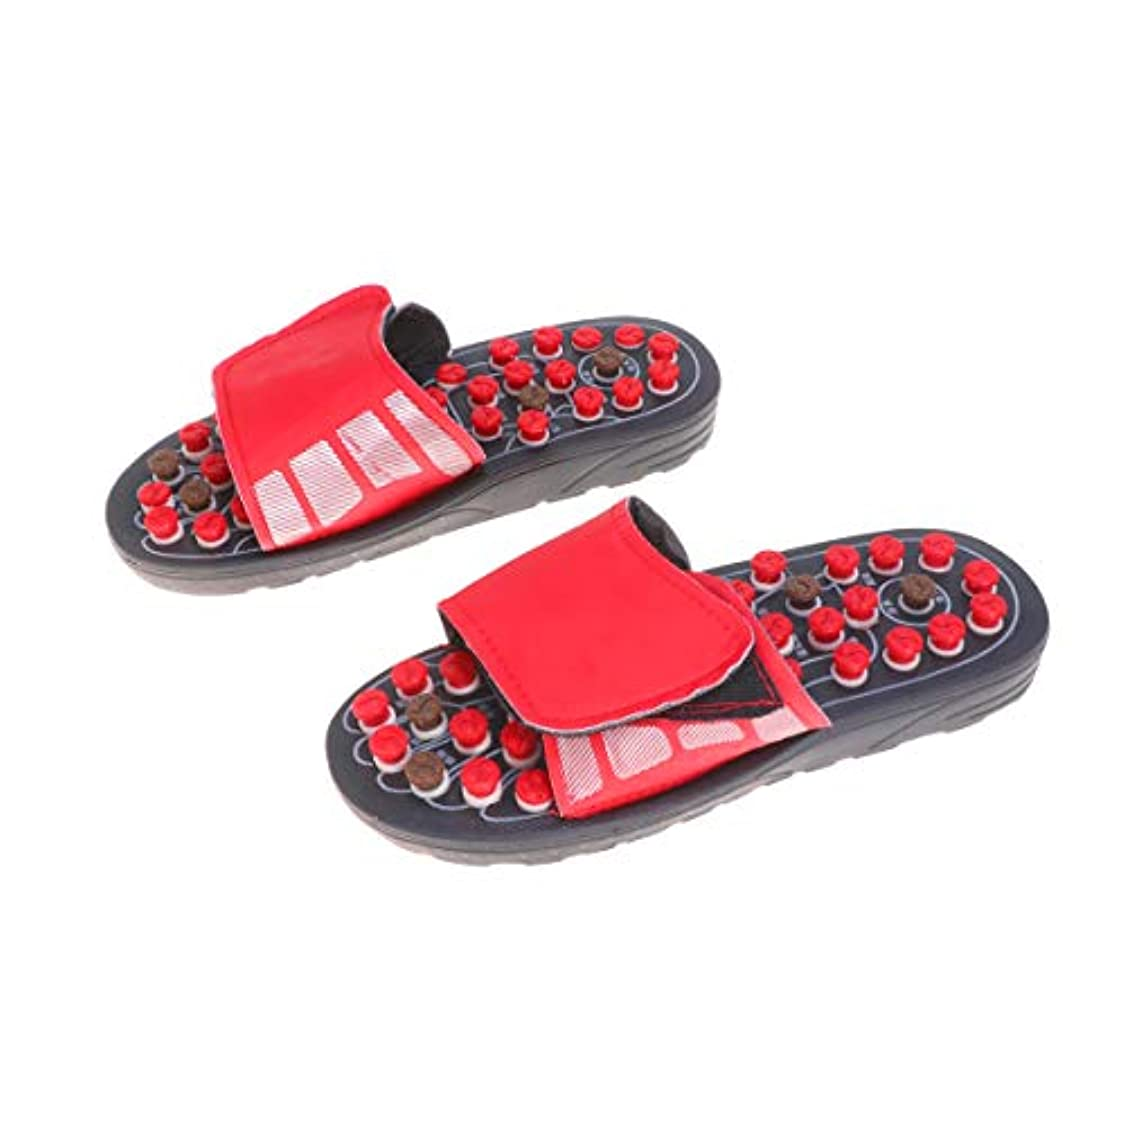 掻くファイル肥満Healifty 1Pair Acupressure Plantar Fasciitis Foot Massager Massage Slippers Shoes Reflexology Sandals Pain Relief Relaxation Health Care Summer Slippers for Men Women Size 44-45(Red)